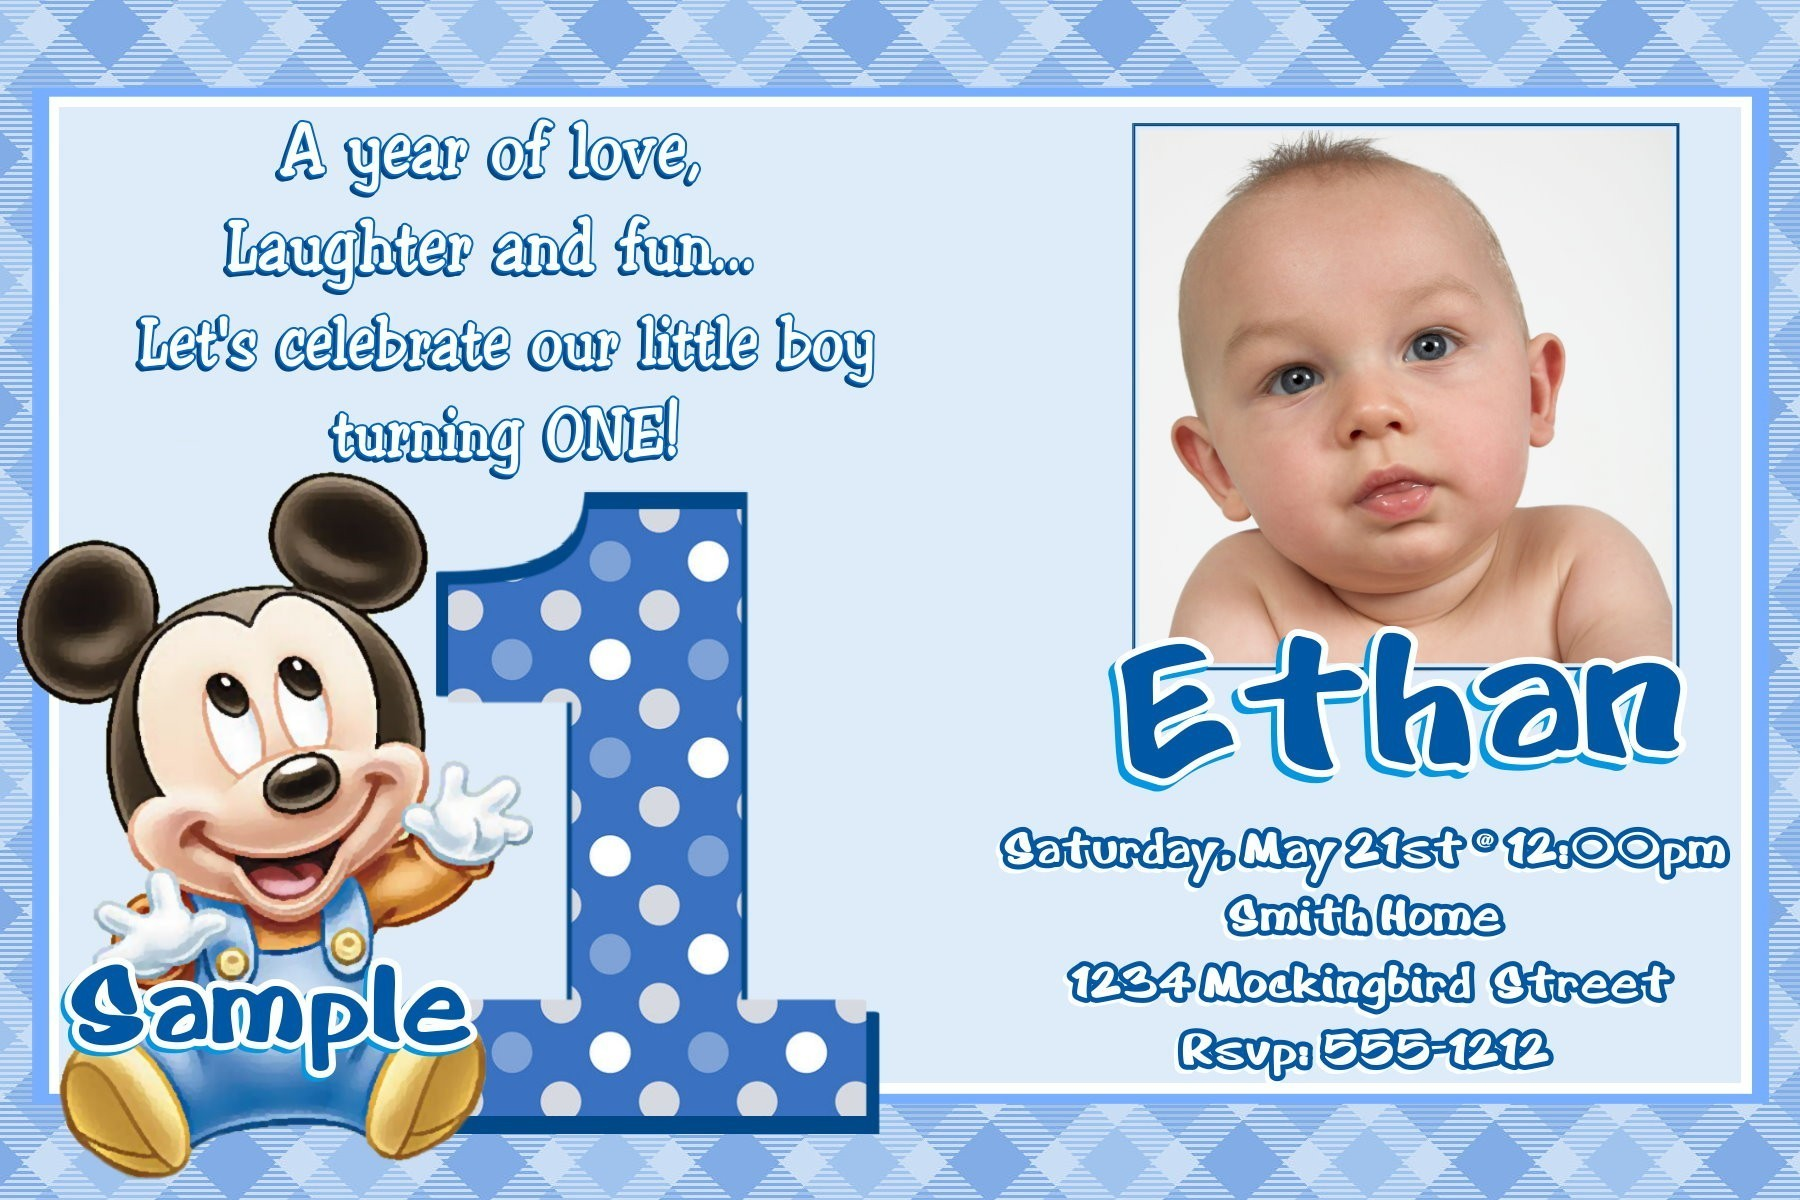 invitation letter for 1st birthday party ; sample-invitation-letter-for-first-birthday-party-fresh-sample-invitation-letter-for-1st-birthday-best-sample-invitation-of-sample-invitation-letter-for-first-birthday-party